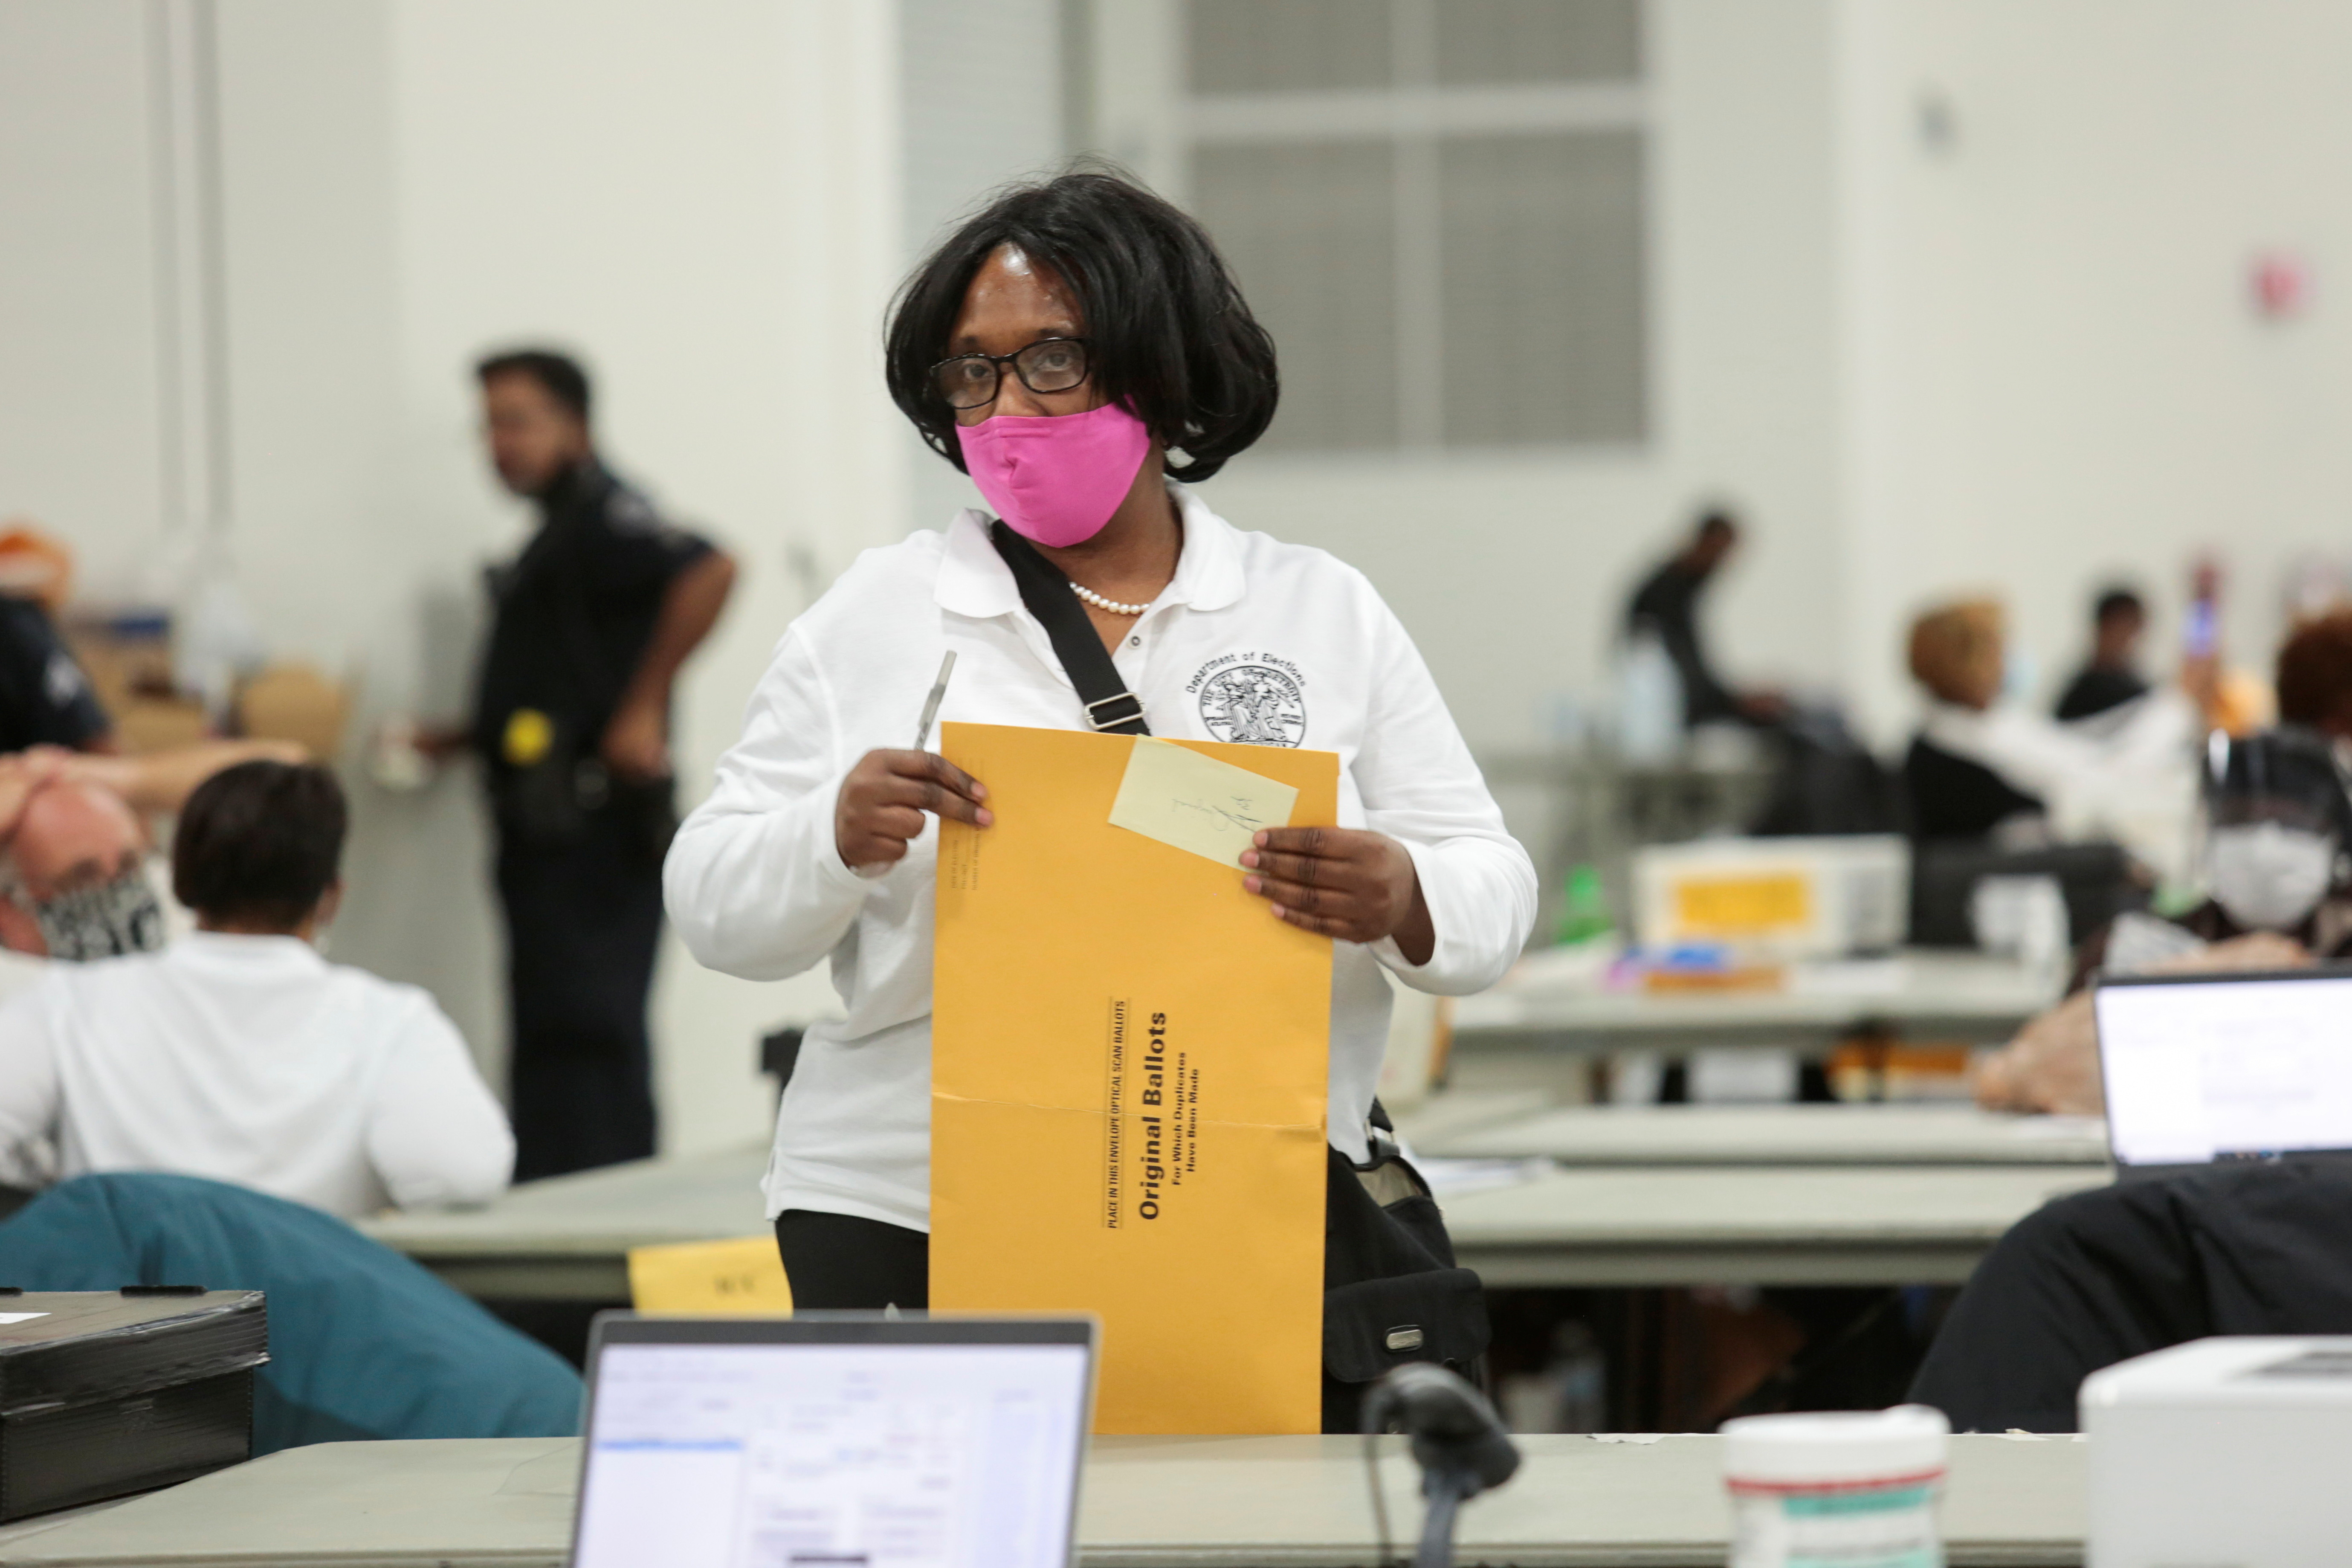 A poll worker supervisor looks on as she handles an envelope of original ballots at the TCF center after Election Day in Detroit, Michigan, U.S., November 4, 2020. REUTERS/Rebecca Cook - RC2OWJ9516M2